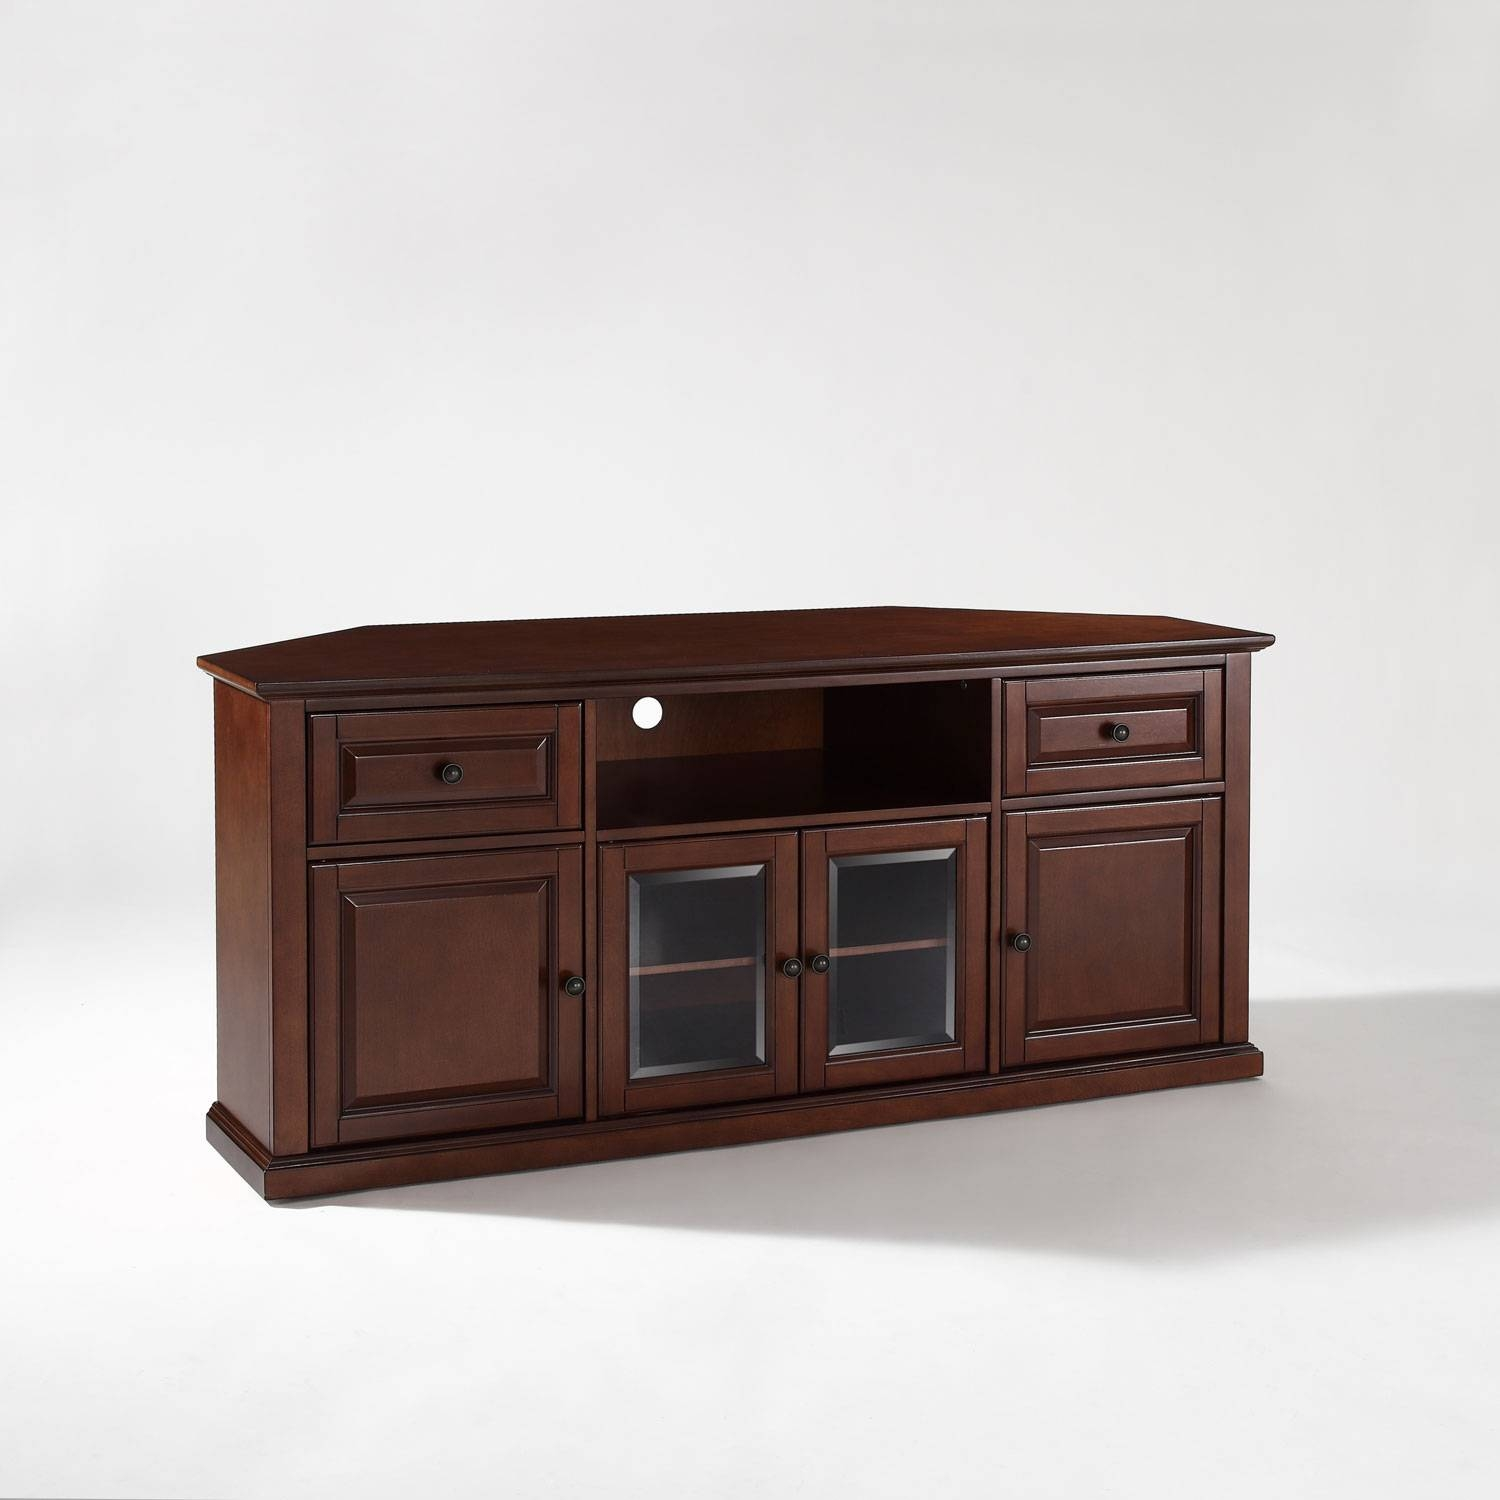 Tv Stands & Cabinets On Sale | Bellacor Regarding Traditional Tv Cabinets (View 4 of 15)